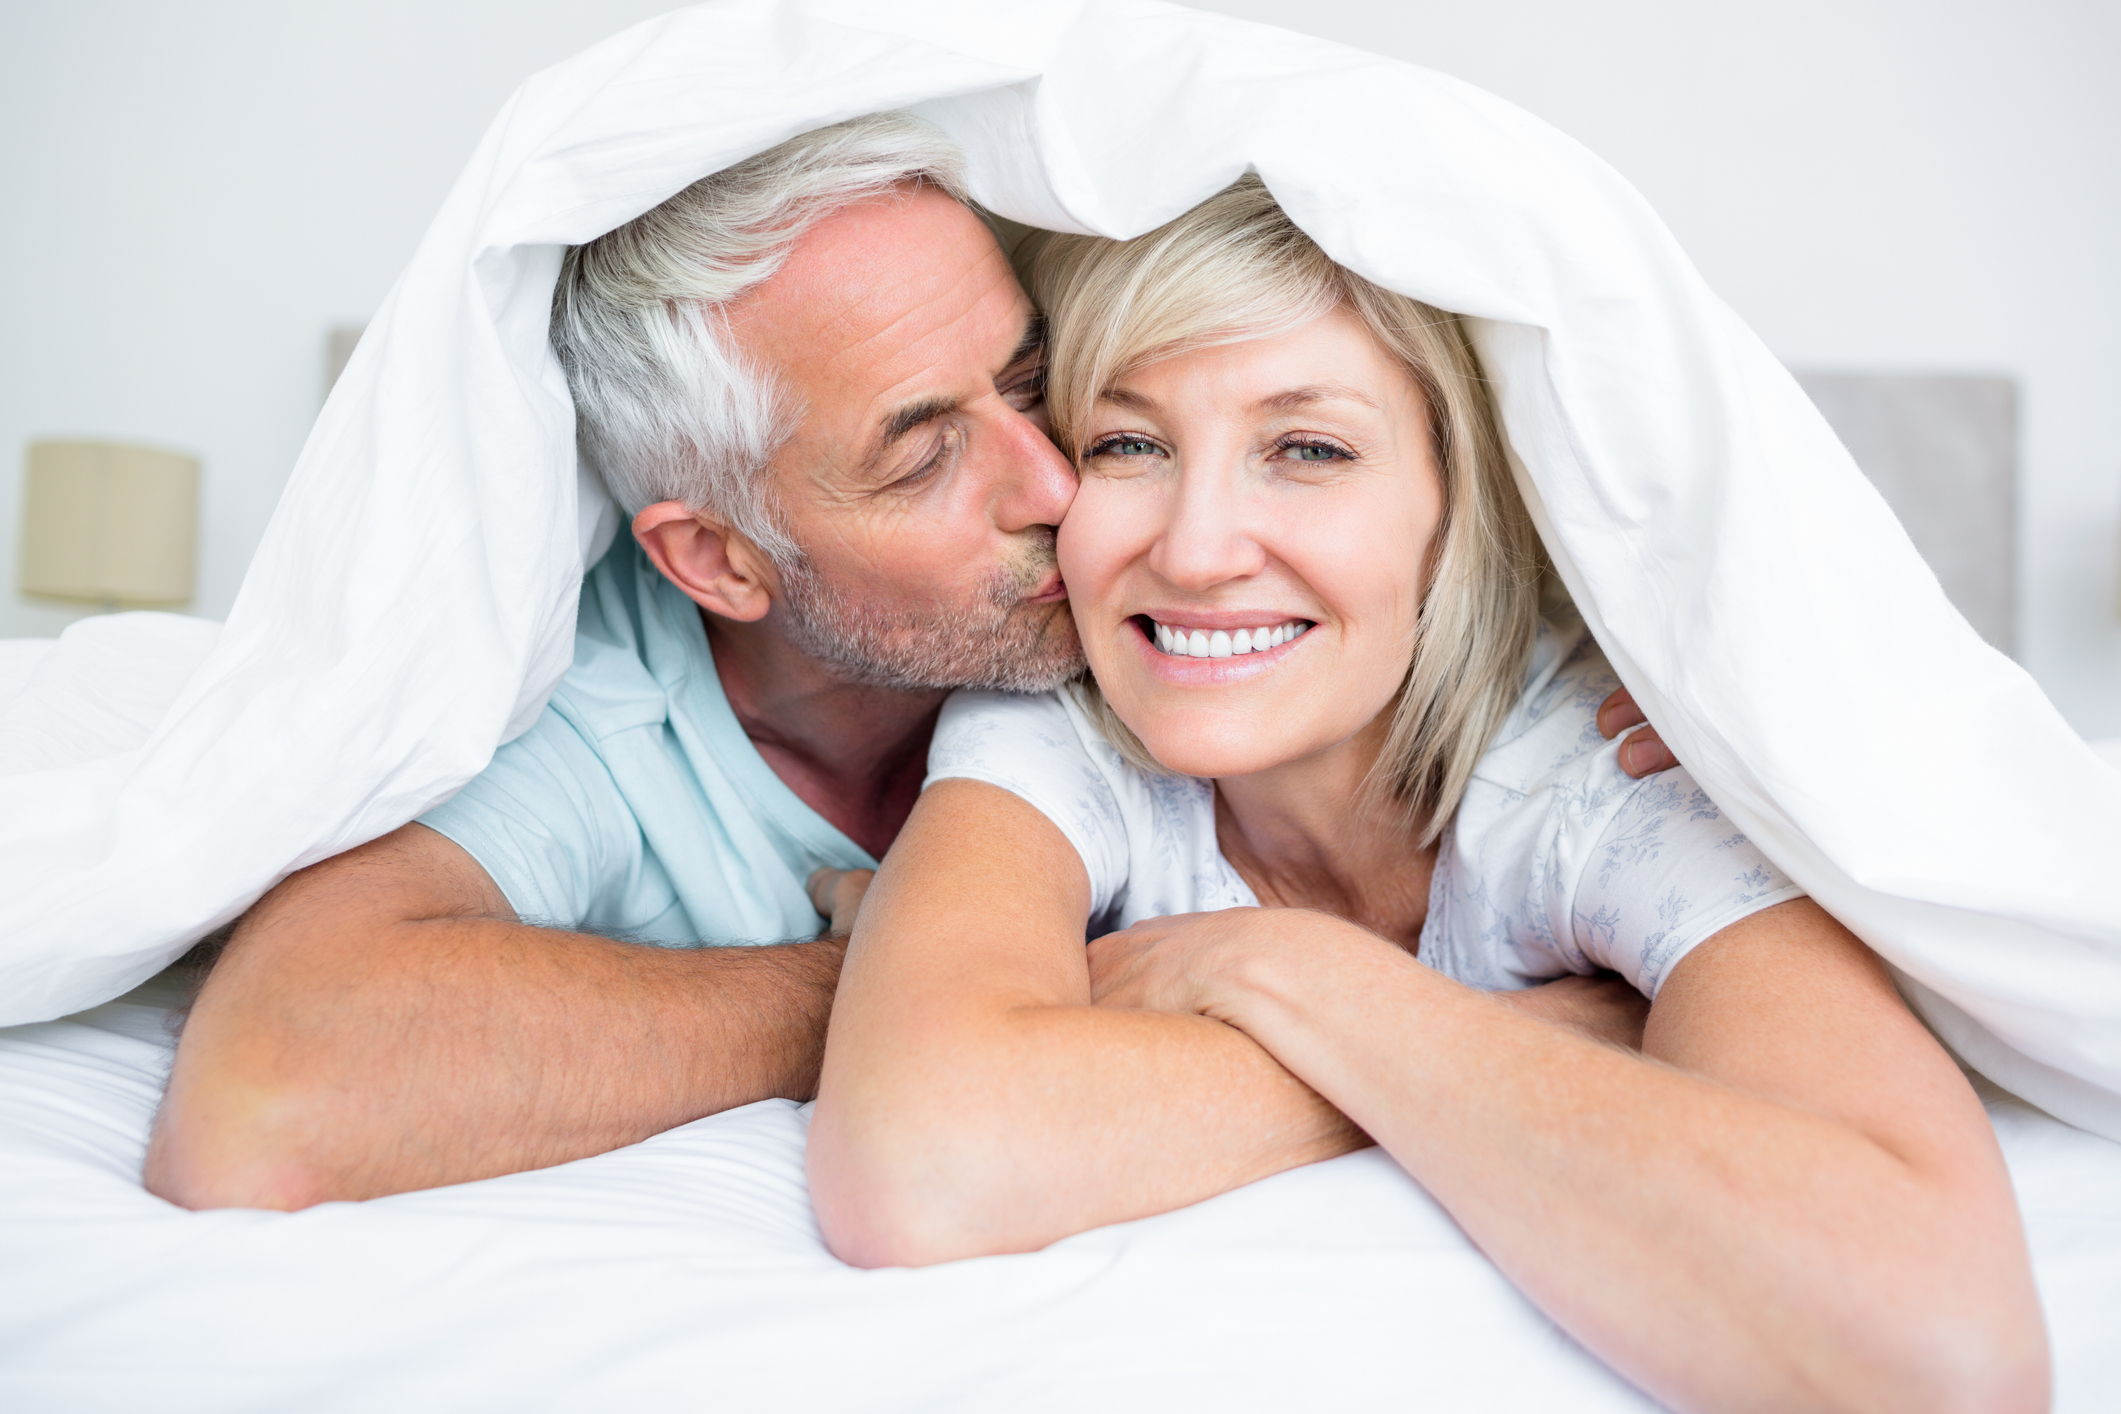 Who says sex stops at 65?